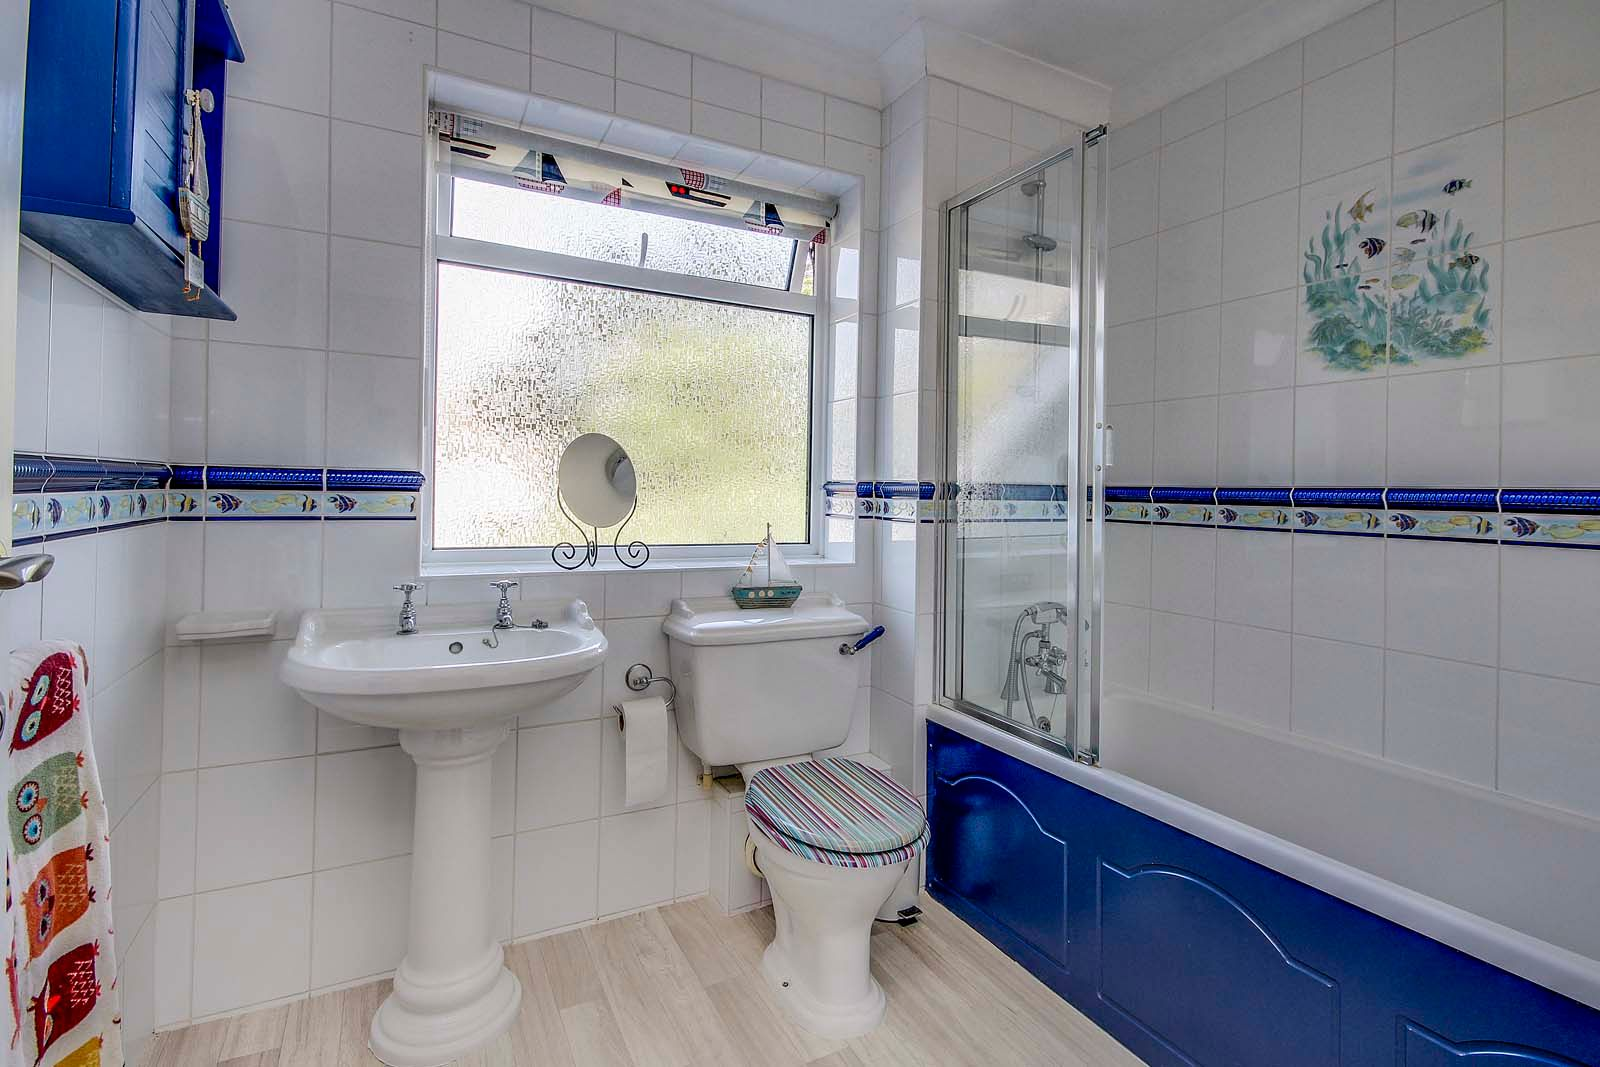 4 bed House for sale in Rustington - Bathroom (Property Image 13)